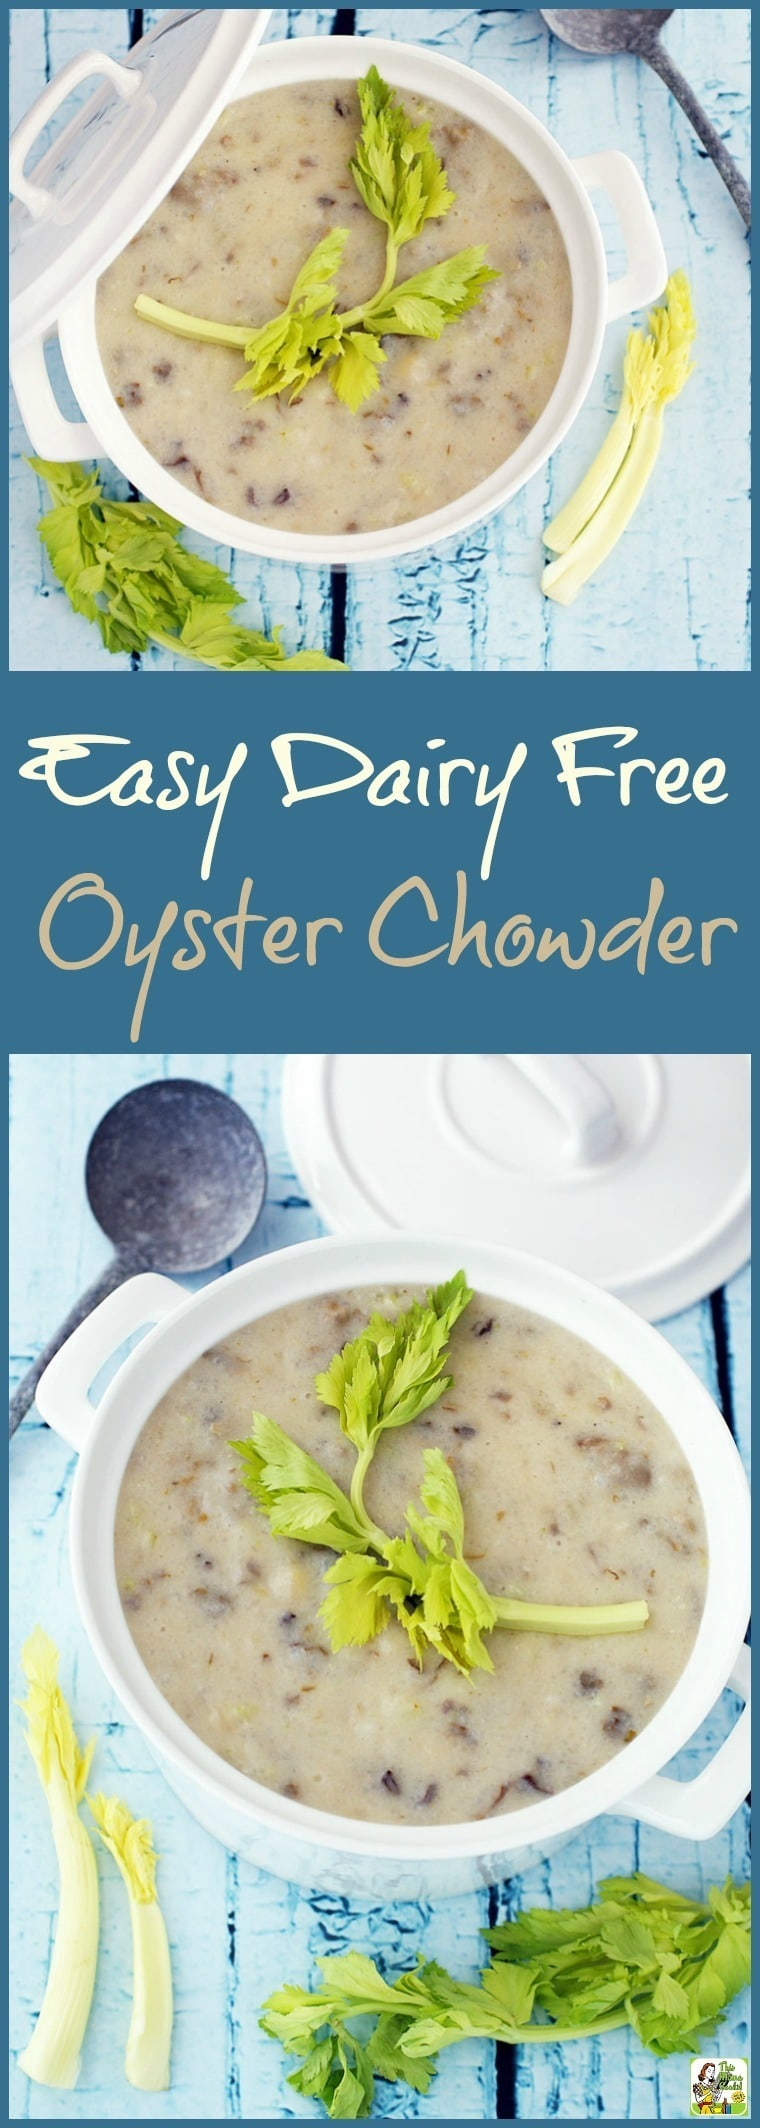 Looking for a healthy oyster chowder recipe that's also gluten free and dairy free? Click to get this recipe for Easy Dairy Free Oyster Chowder.